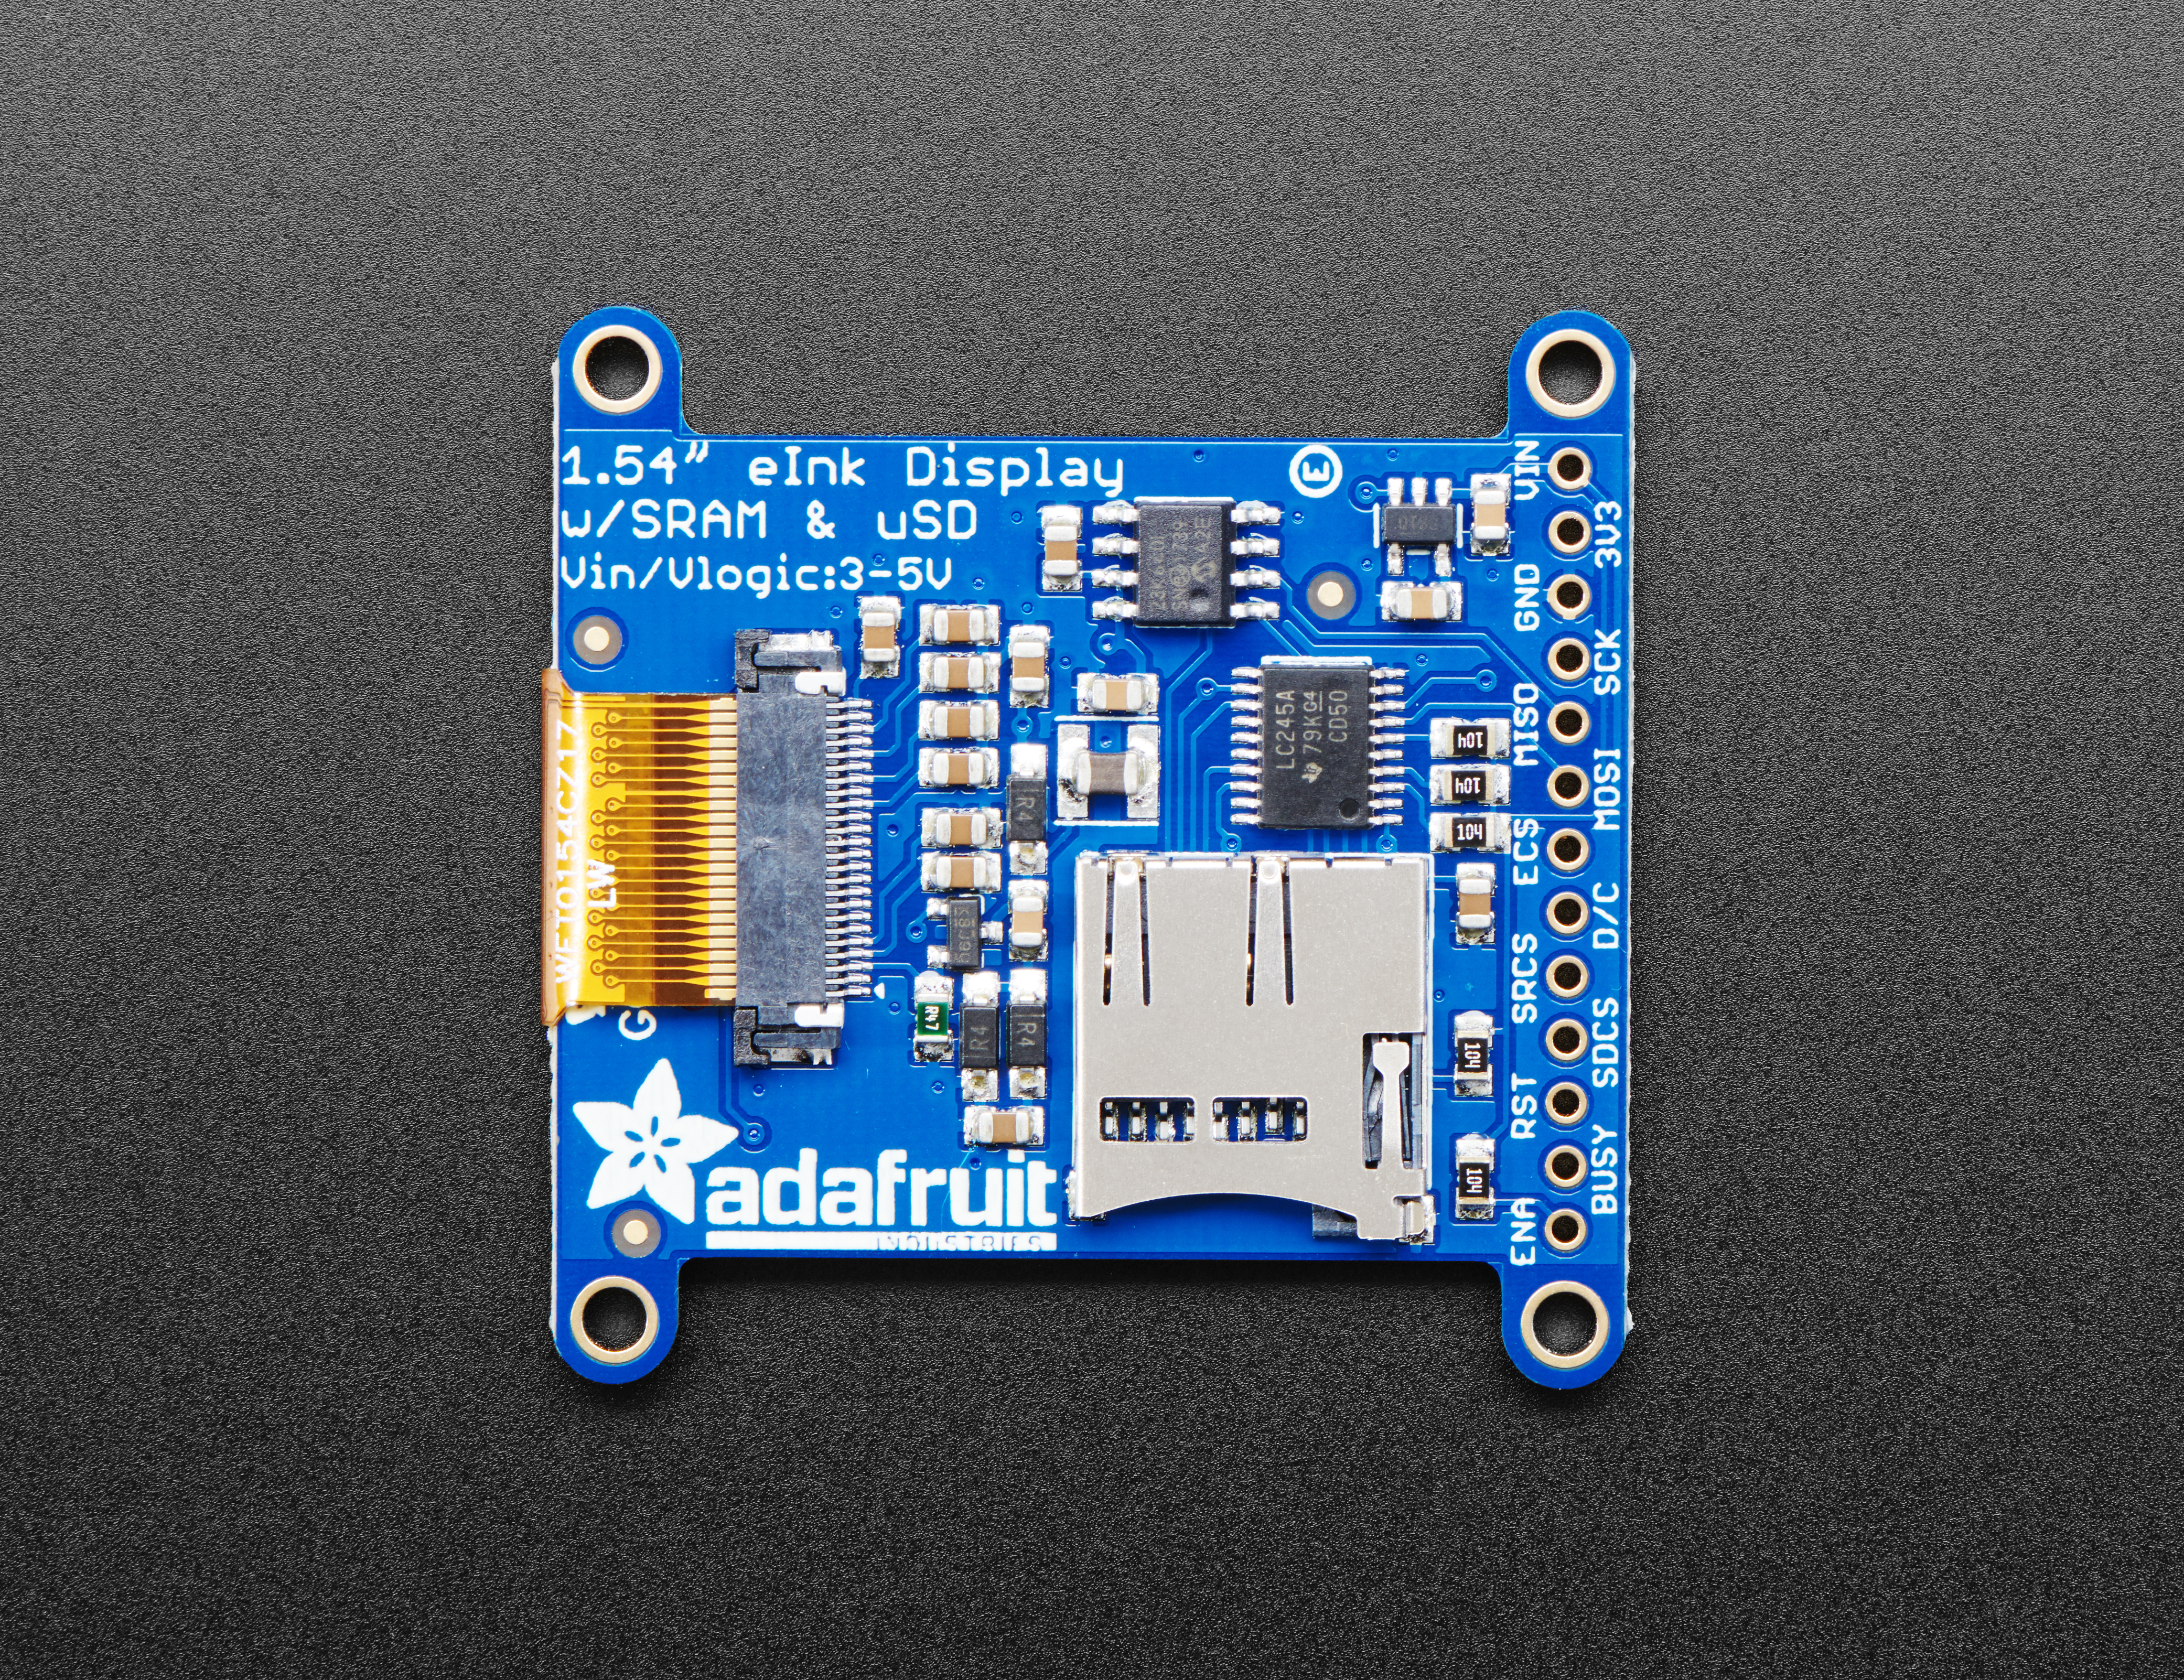 adafruit_products_3625_back_ORIG_2018_07.jpg